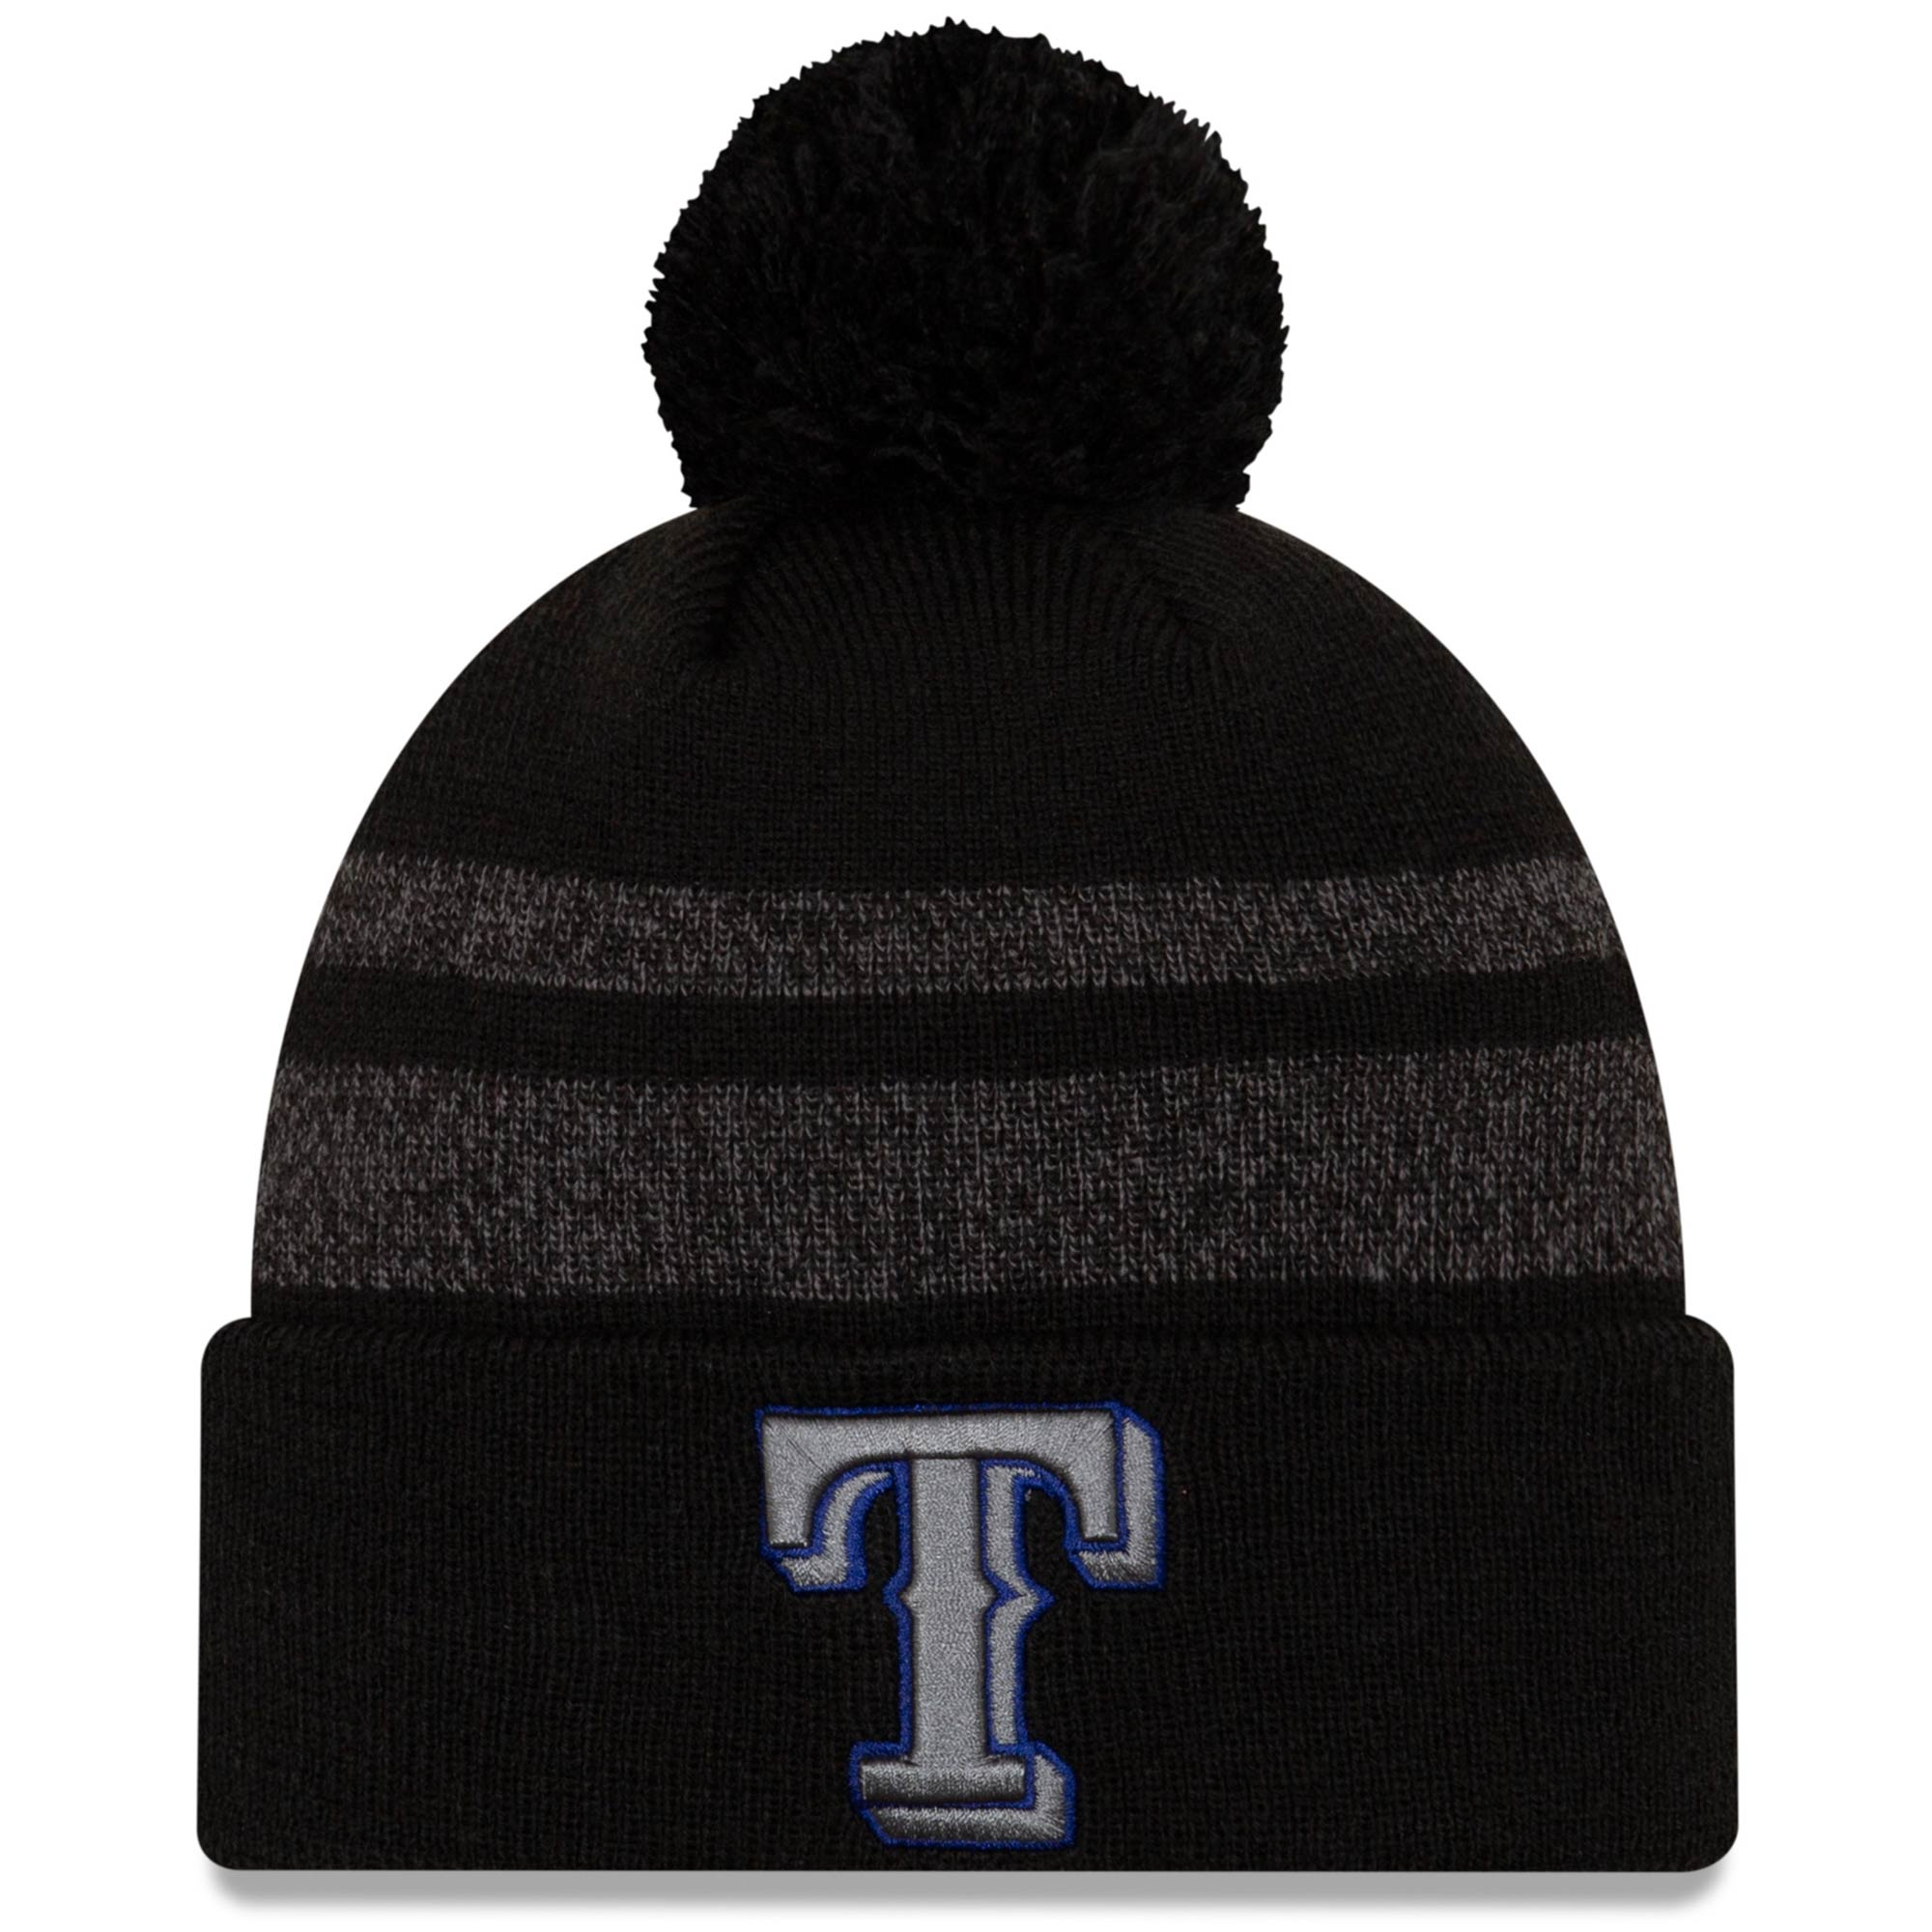 Texas Rangers New Era Dispatch Cuffed Knit Hat With Pom - Black